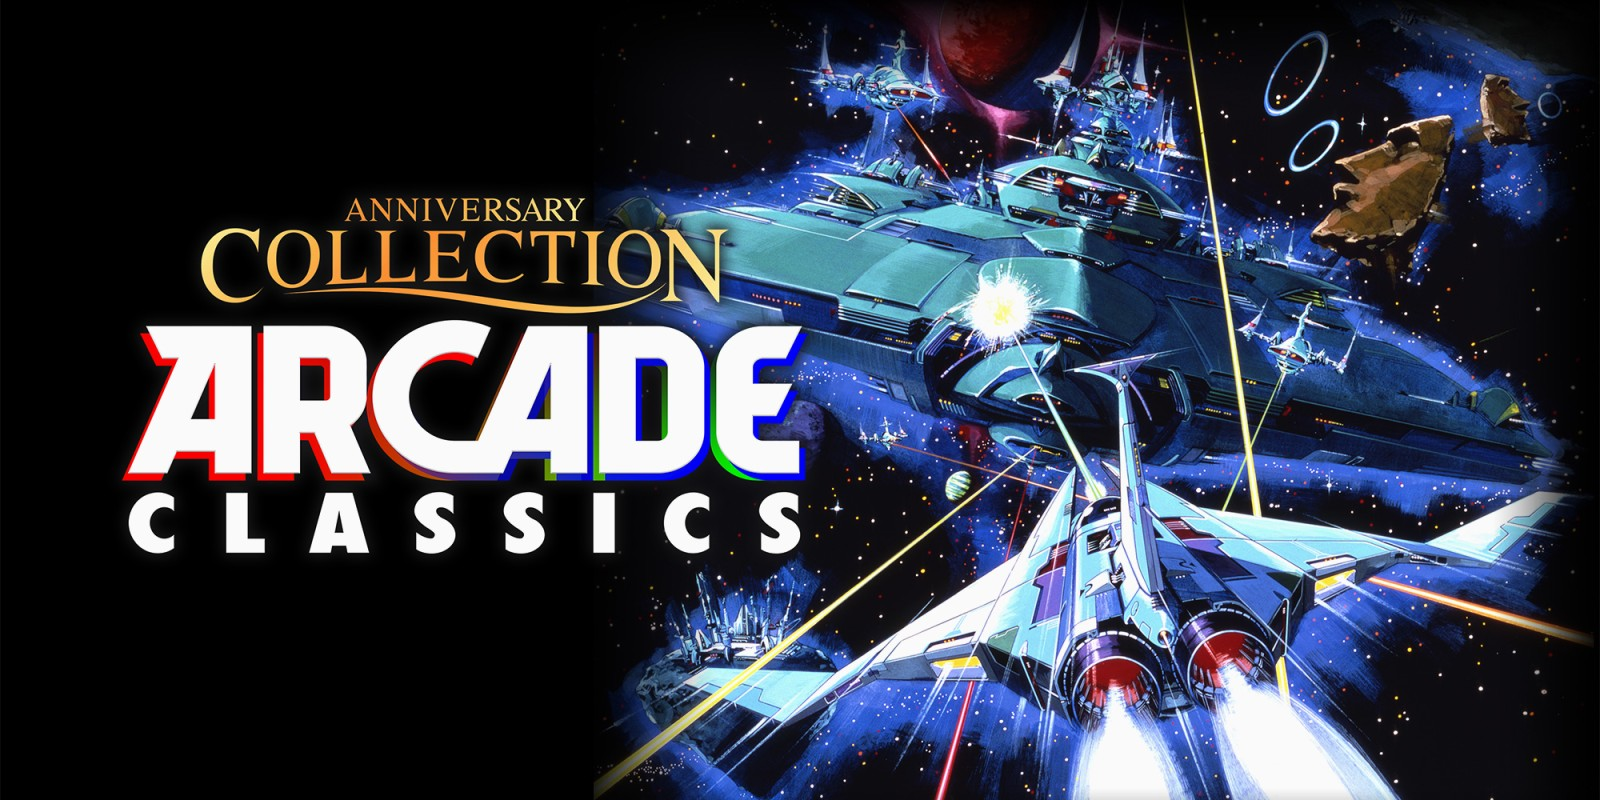 Arcade Classics Anniversary Collection | Nintendo Switch download